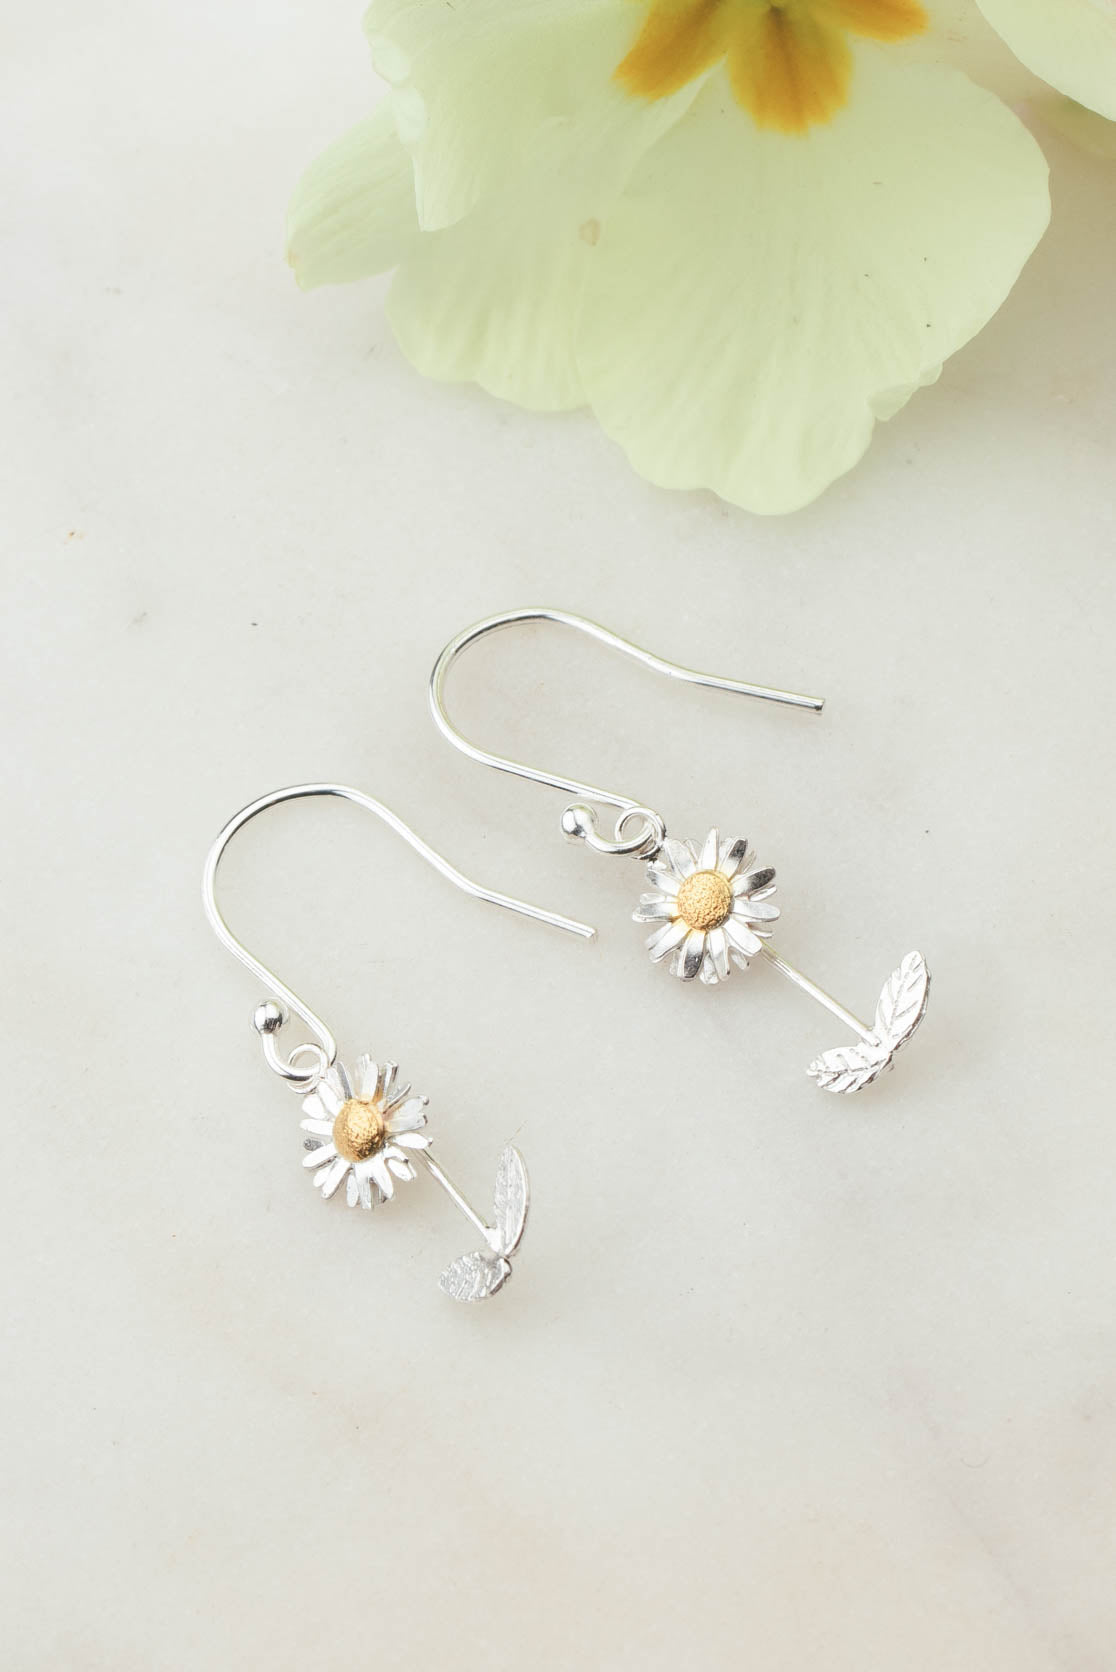 Sterling Silver and Gold Daisy Earrings - Daisy with Stalk on Hooks